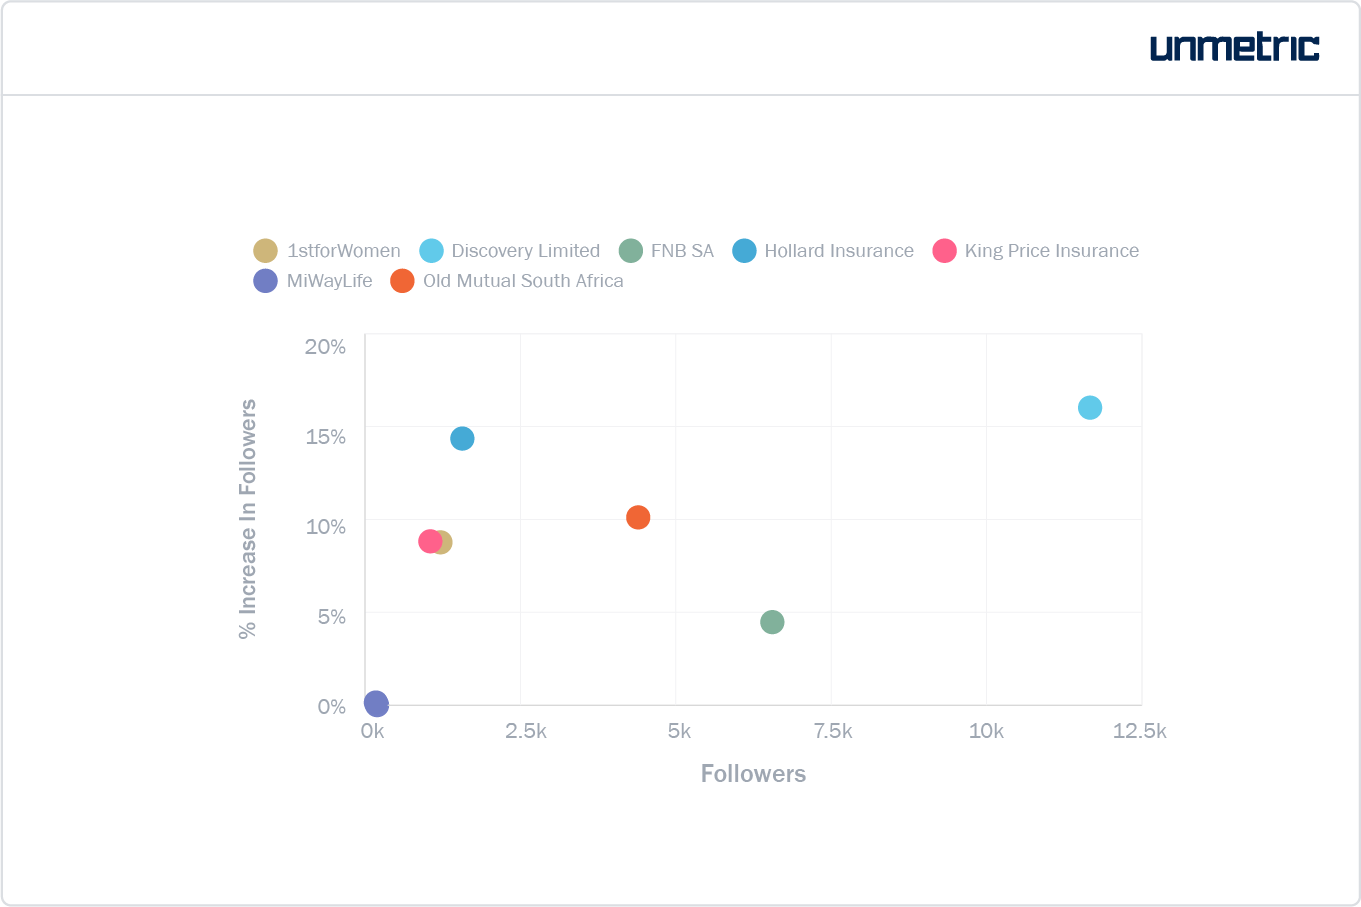 Follower size and growth for each brand on Instagram